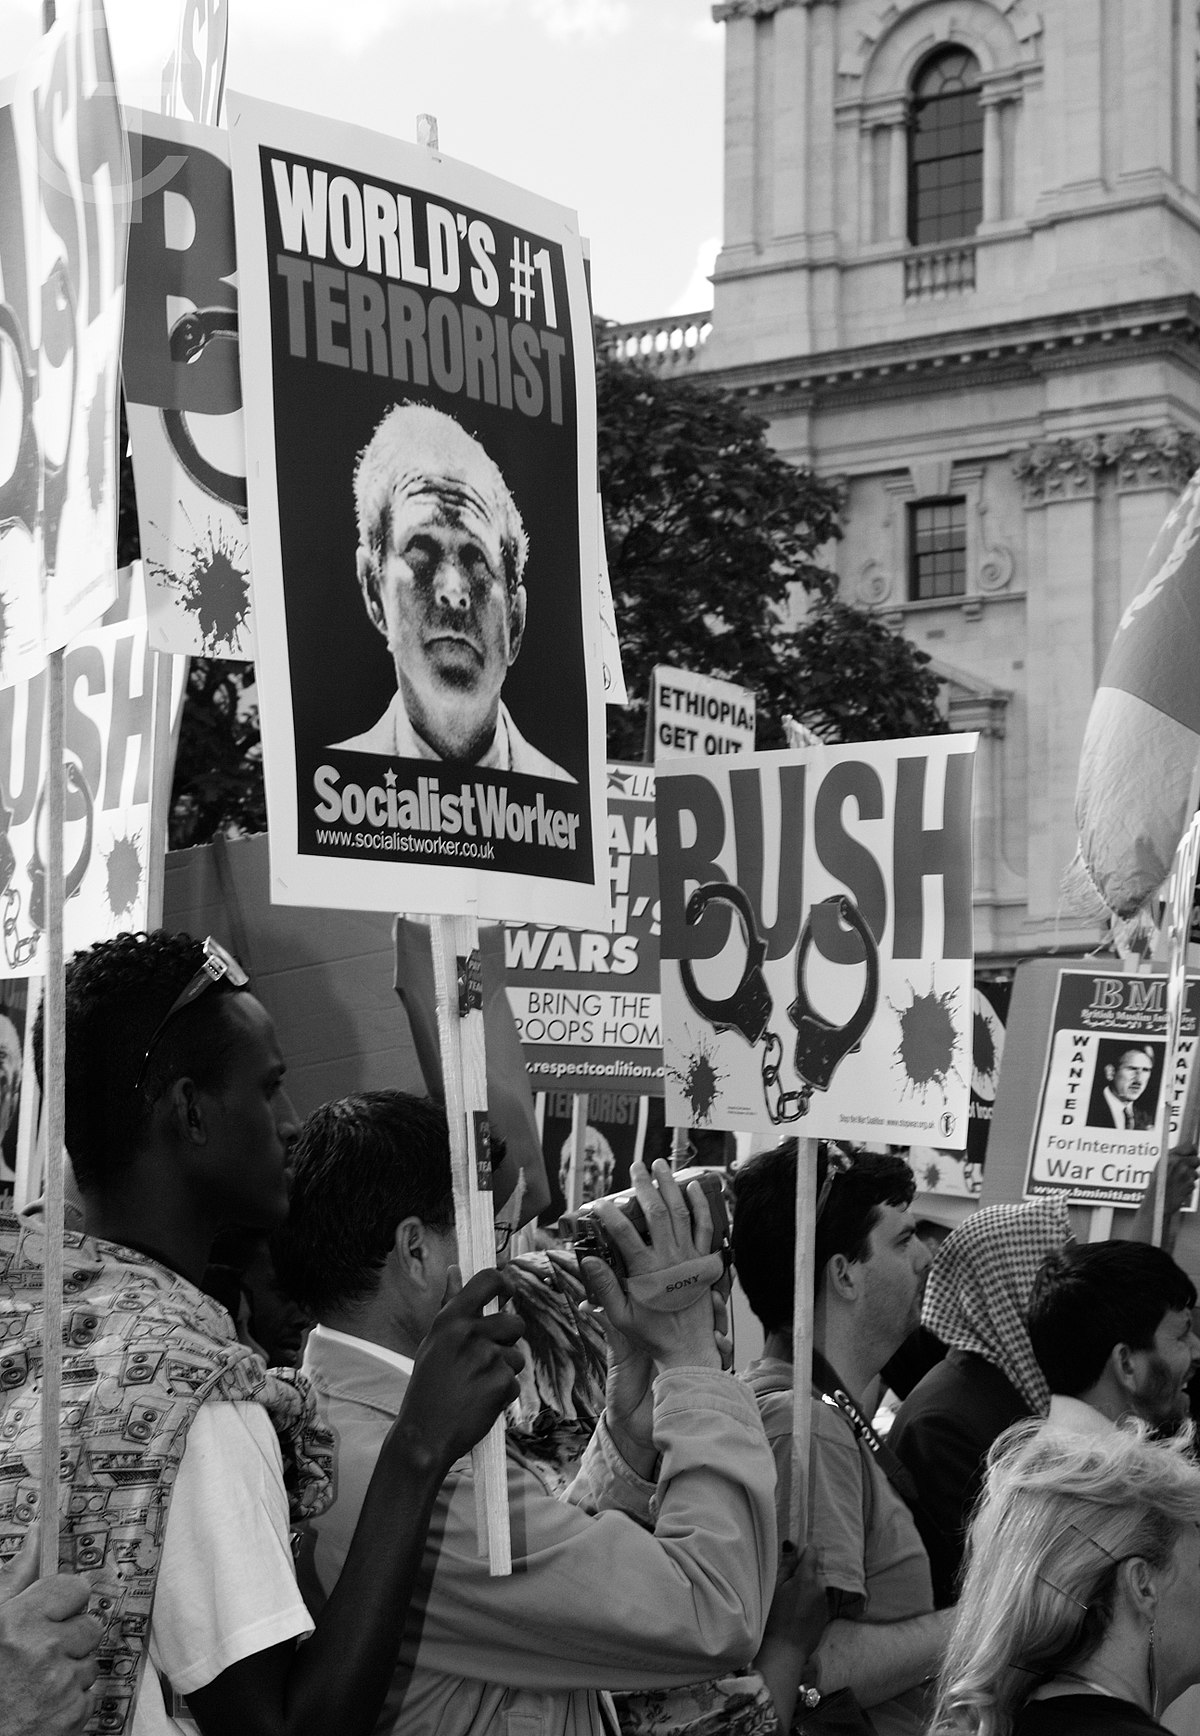 racial politics As the uk's so-called special relationship with the us becomes increasingly fraught, american history and politics are centre stage at this year's edinburgh festival alongside five shows with.